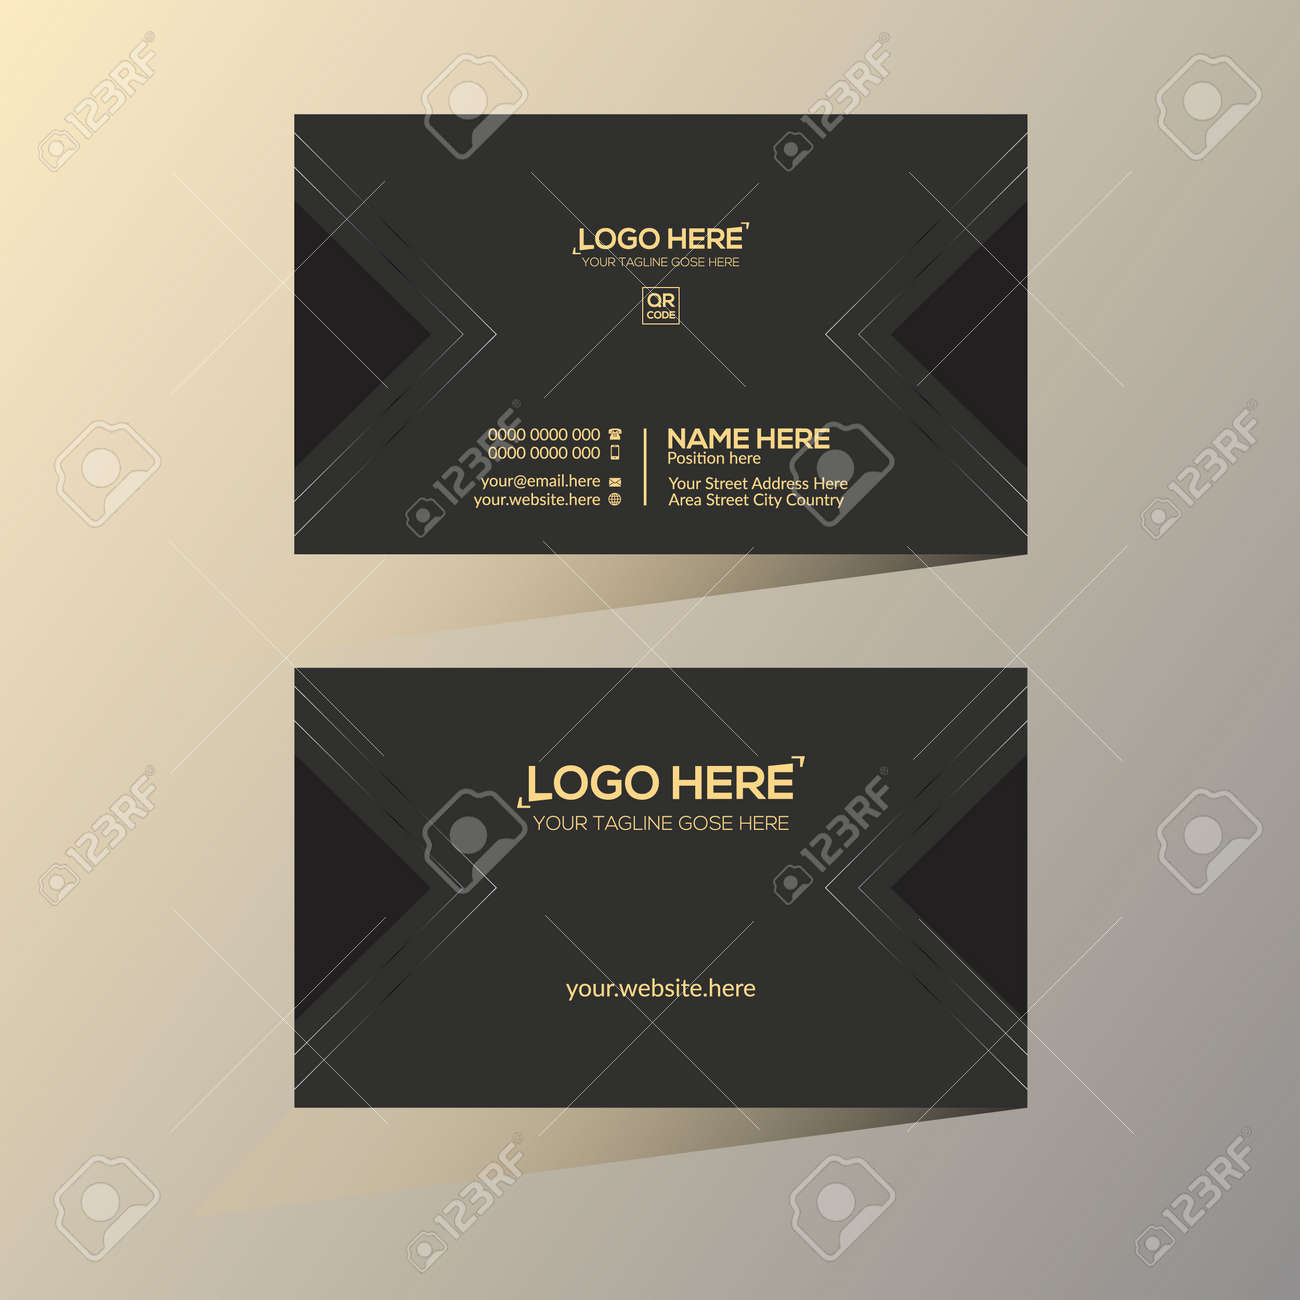 golden and black colored vector business card design for any company use - 172188523